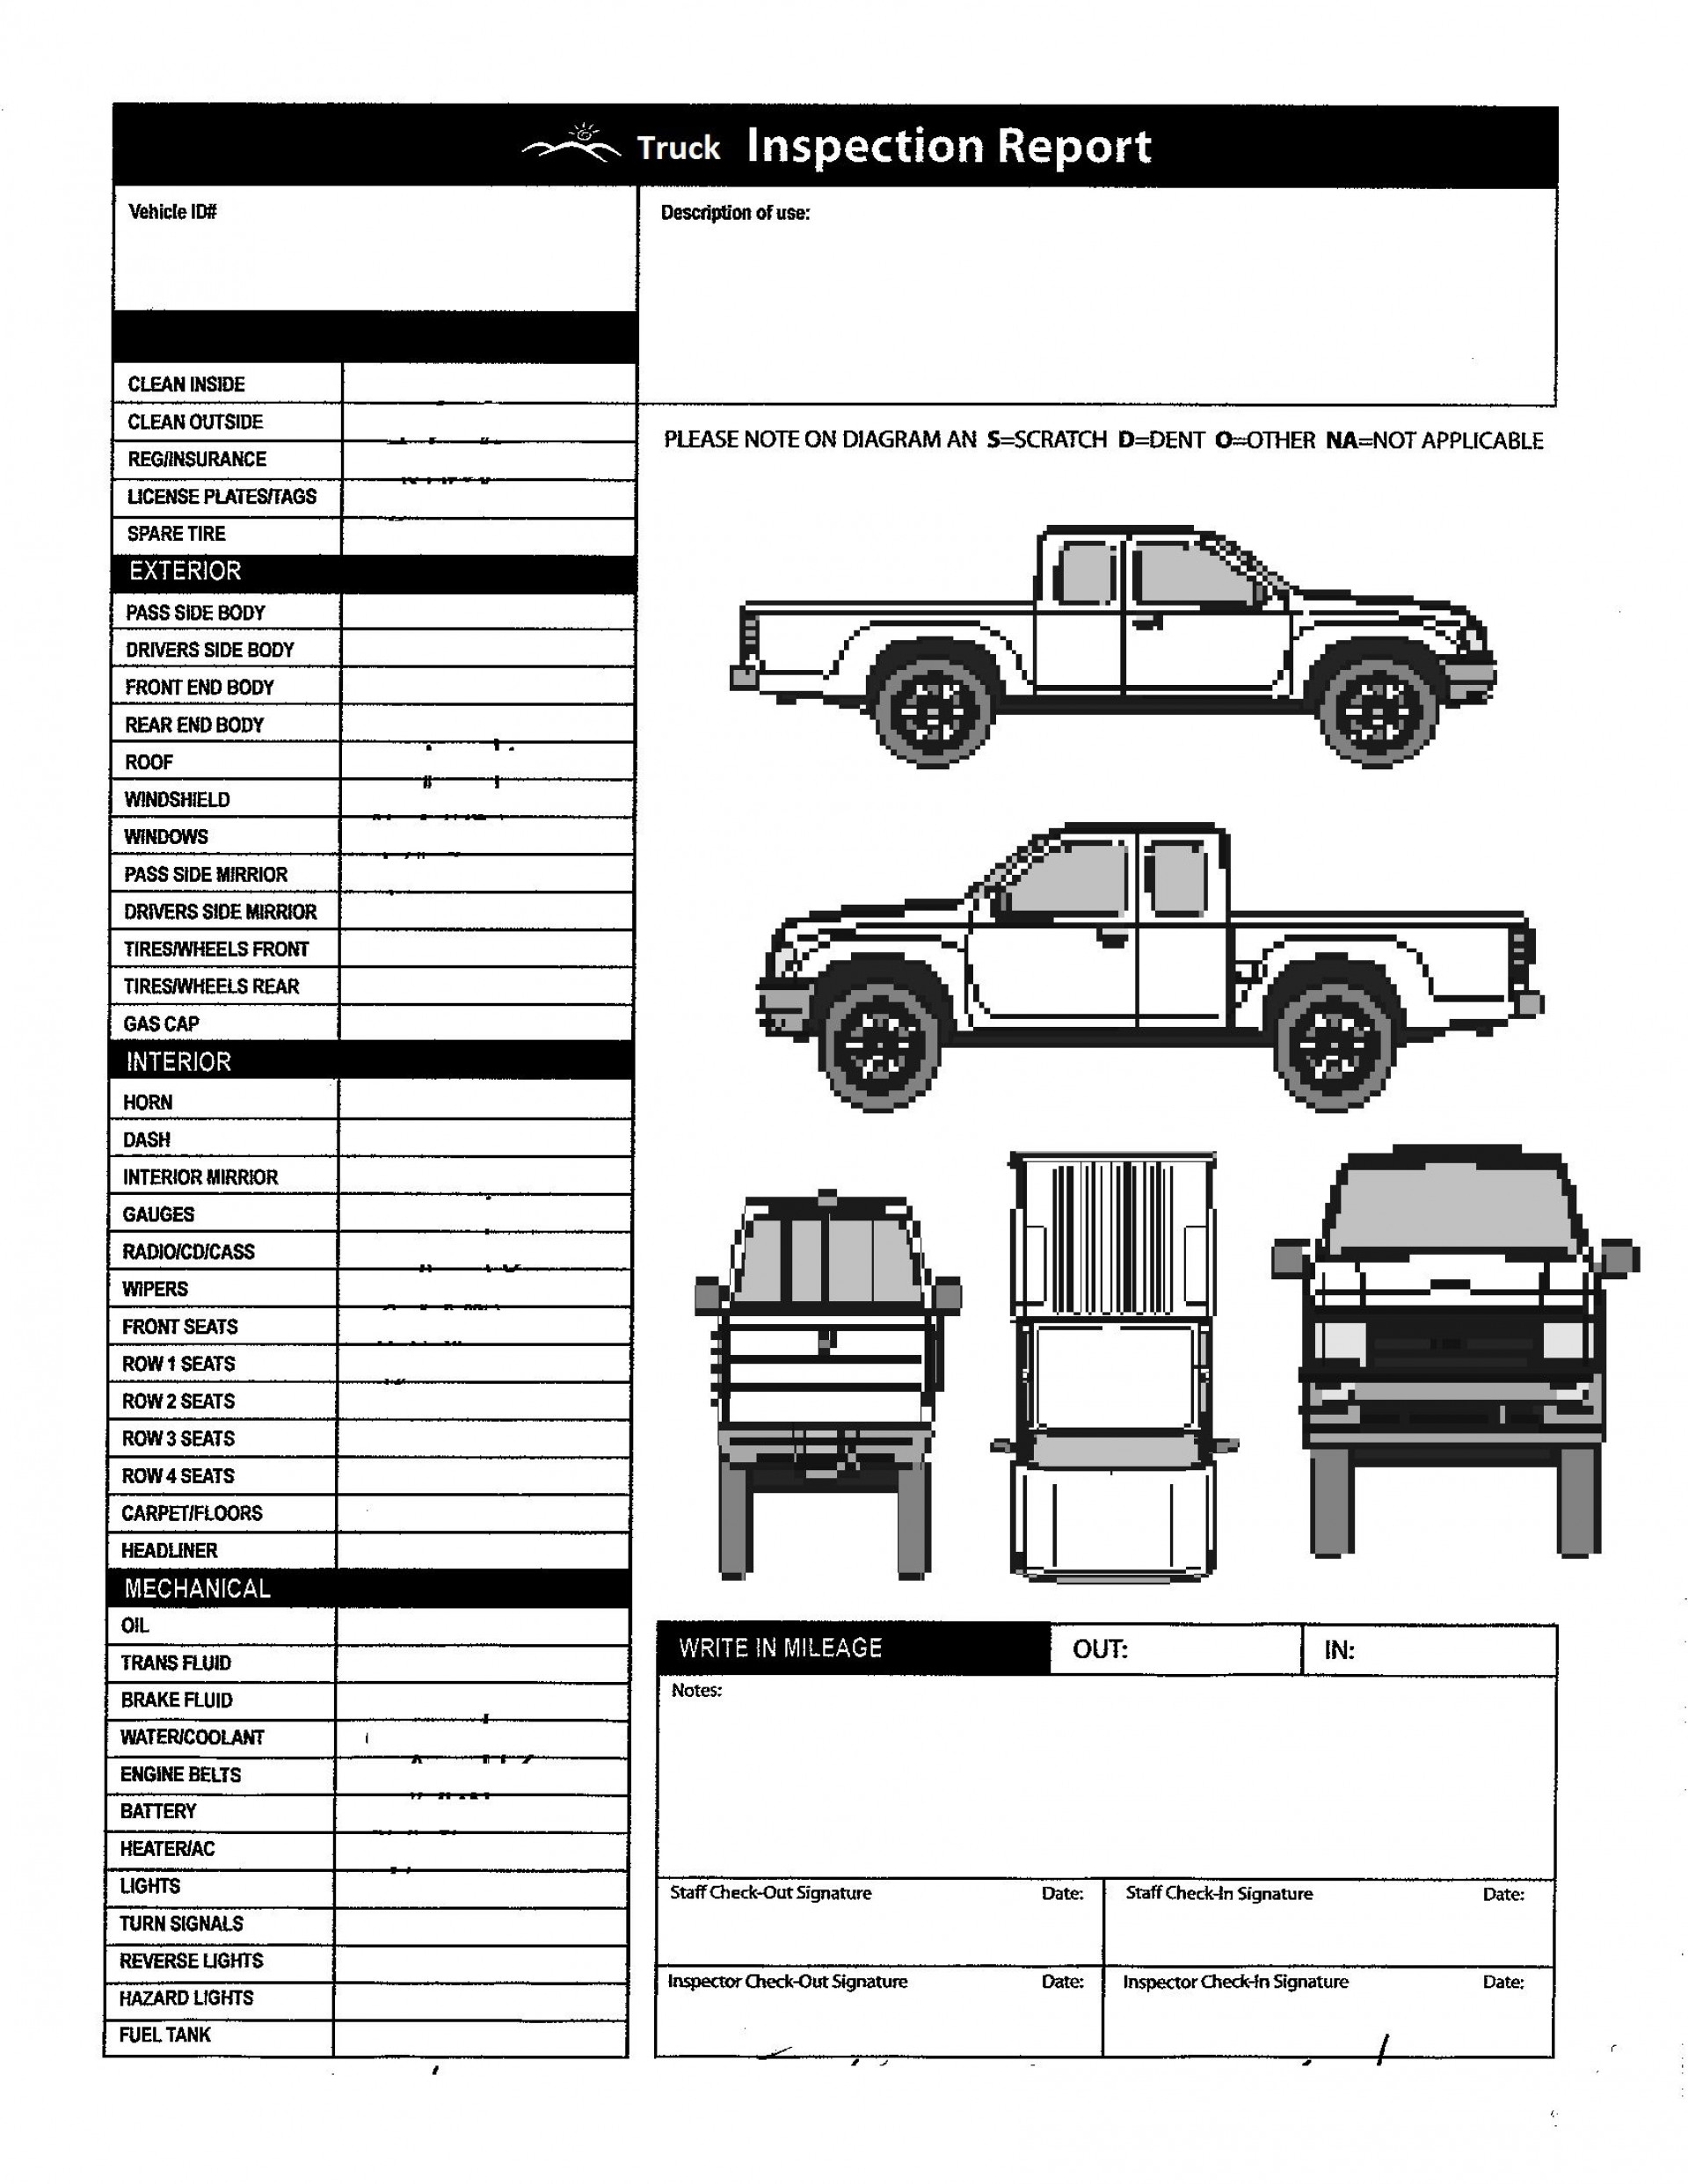 008 Phenomenal Truck Inspection Form Template Image  Commercial Vehicle Maintenance Free1920